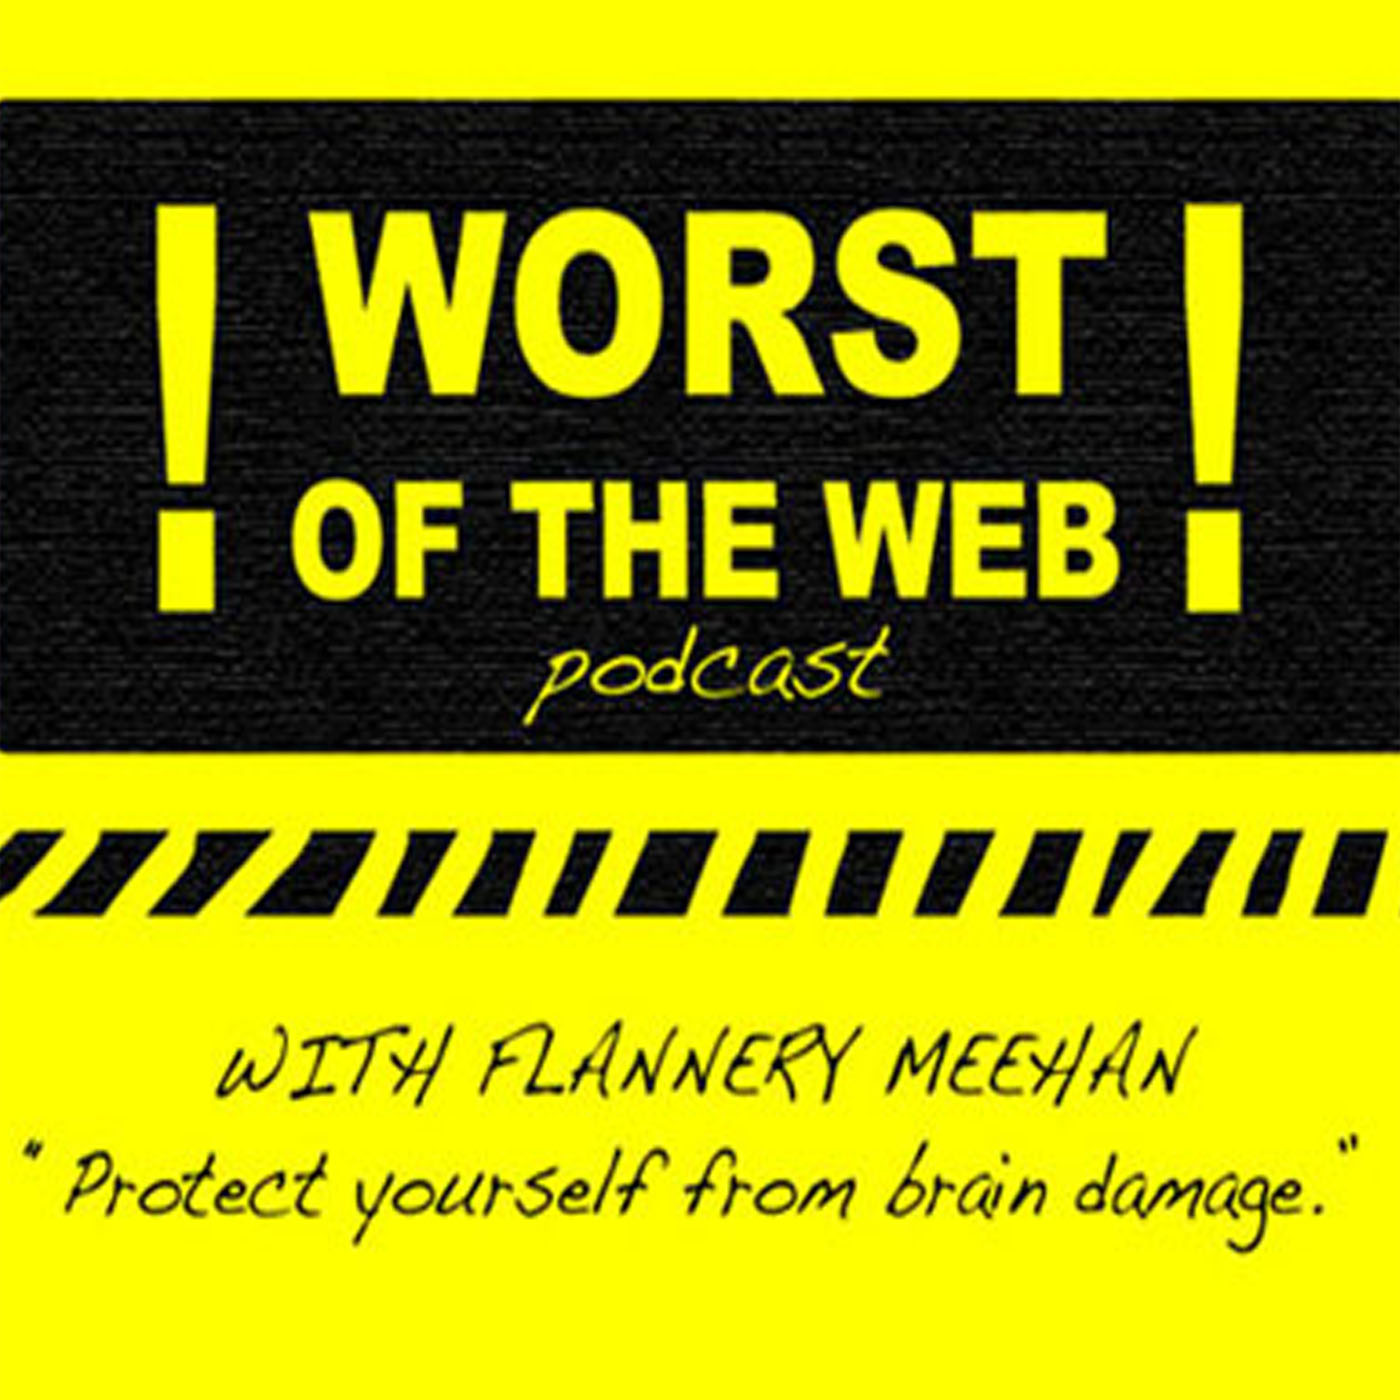 Worst of the Web Podcast